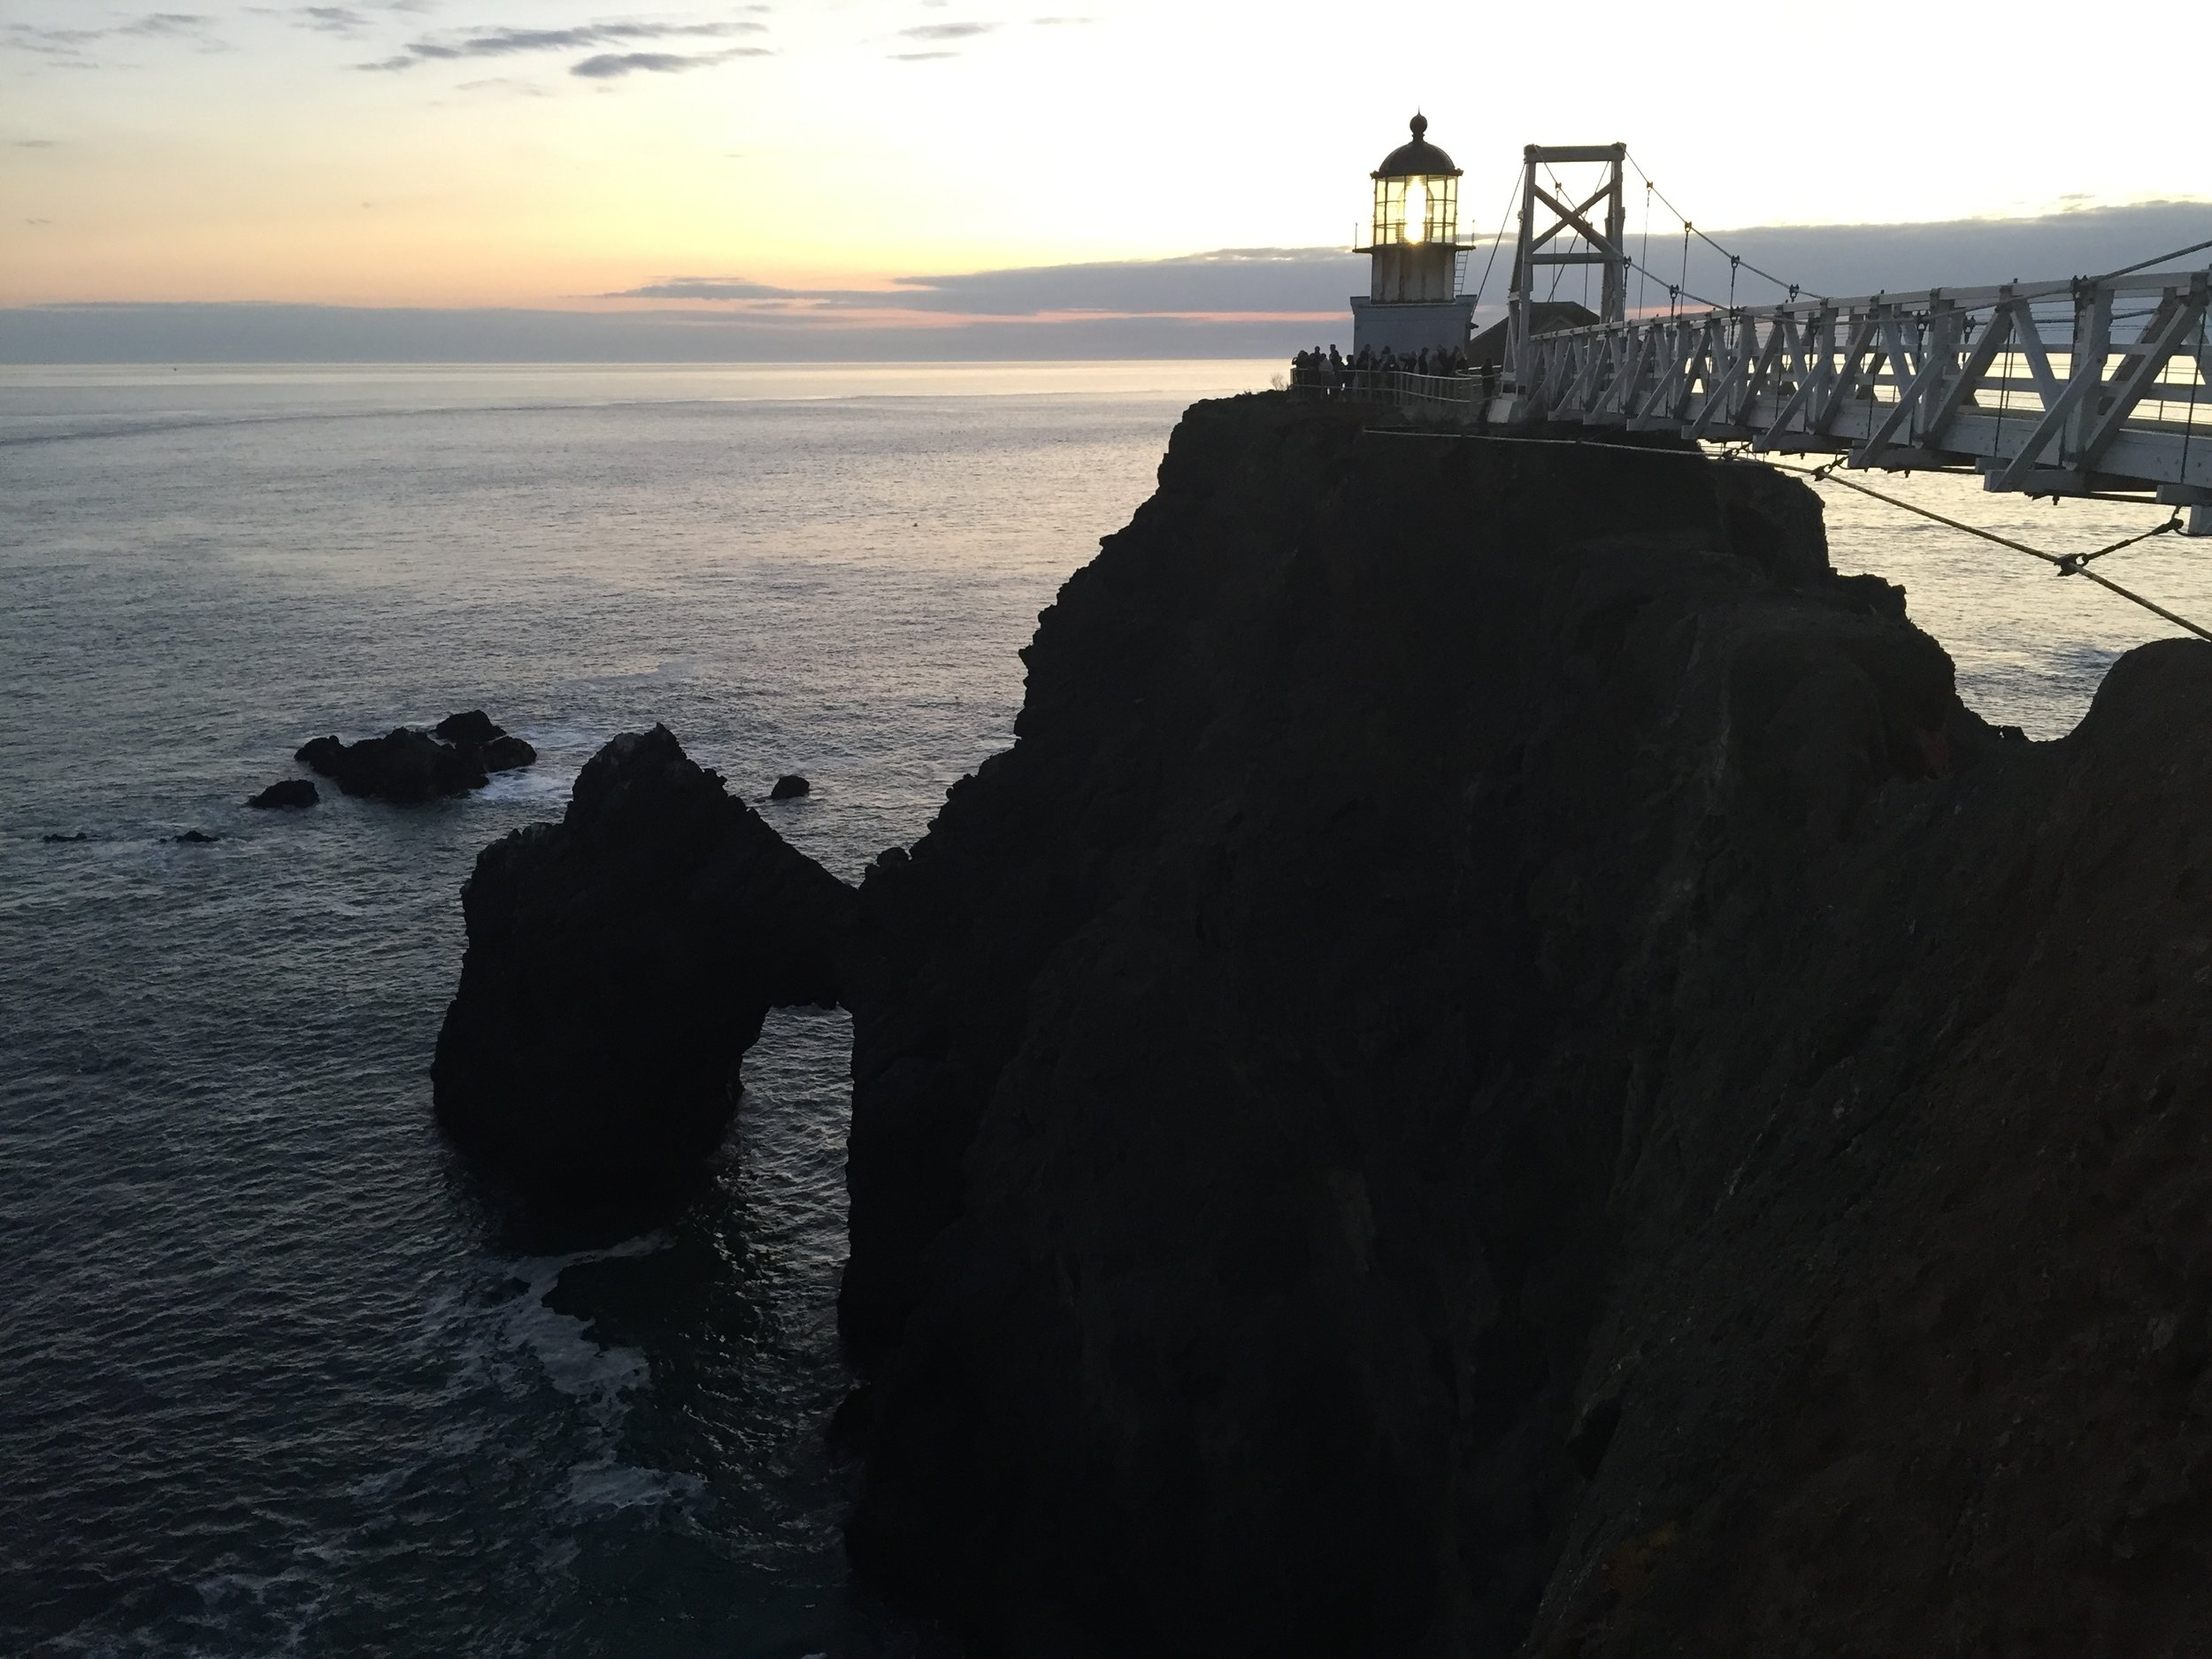 June 1, 2019 - Join us for an lighthouse tour, and help us grow the movement to get all youth outside.